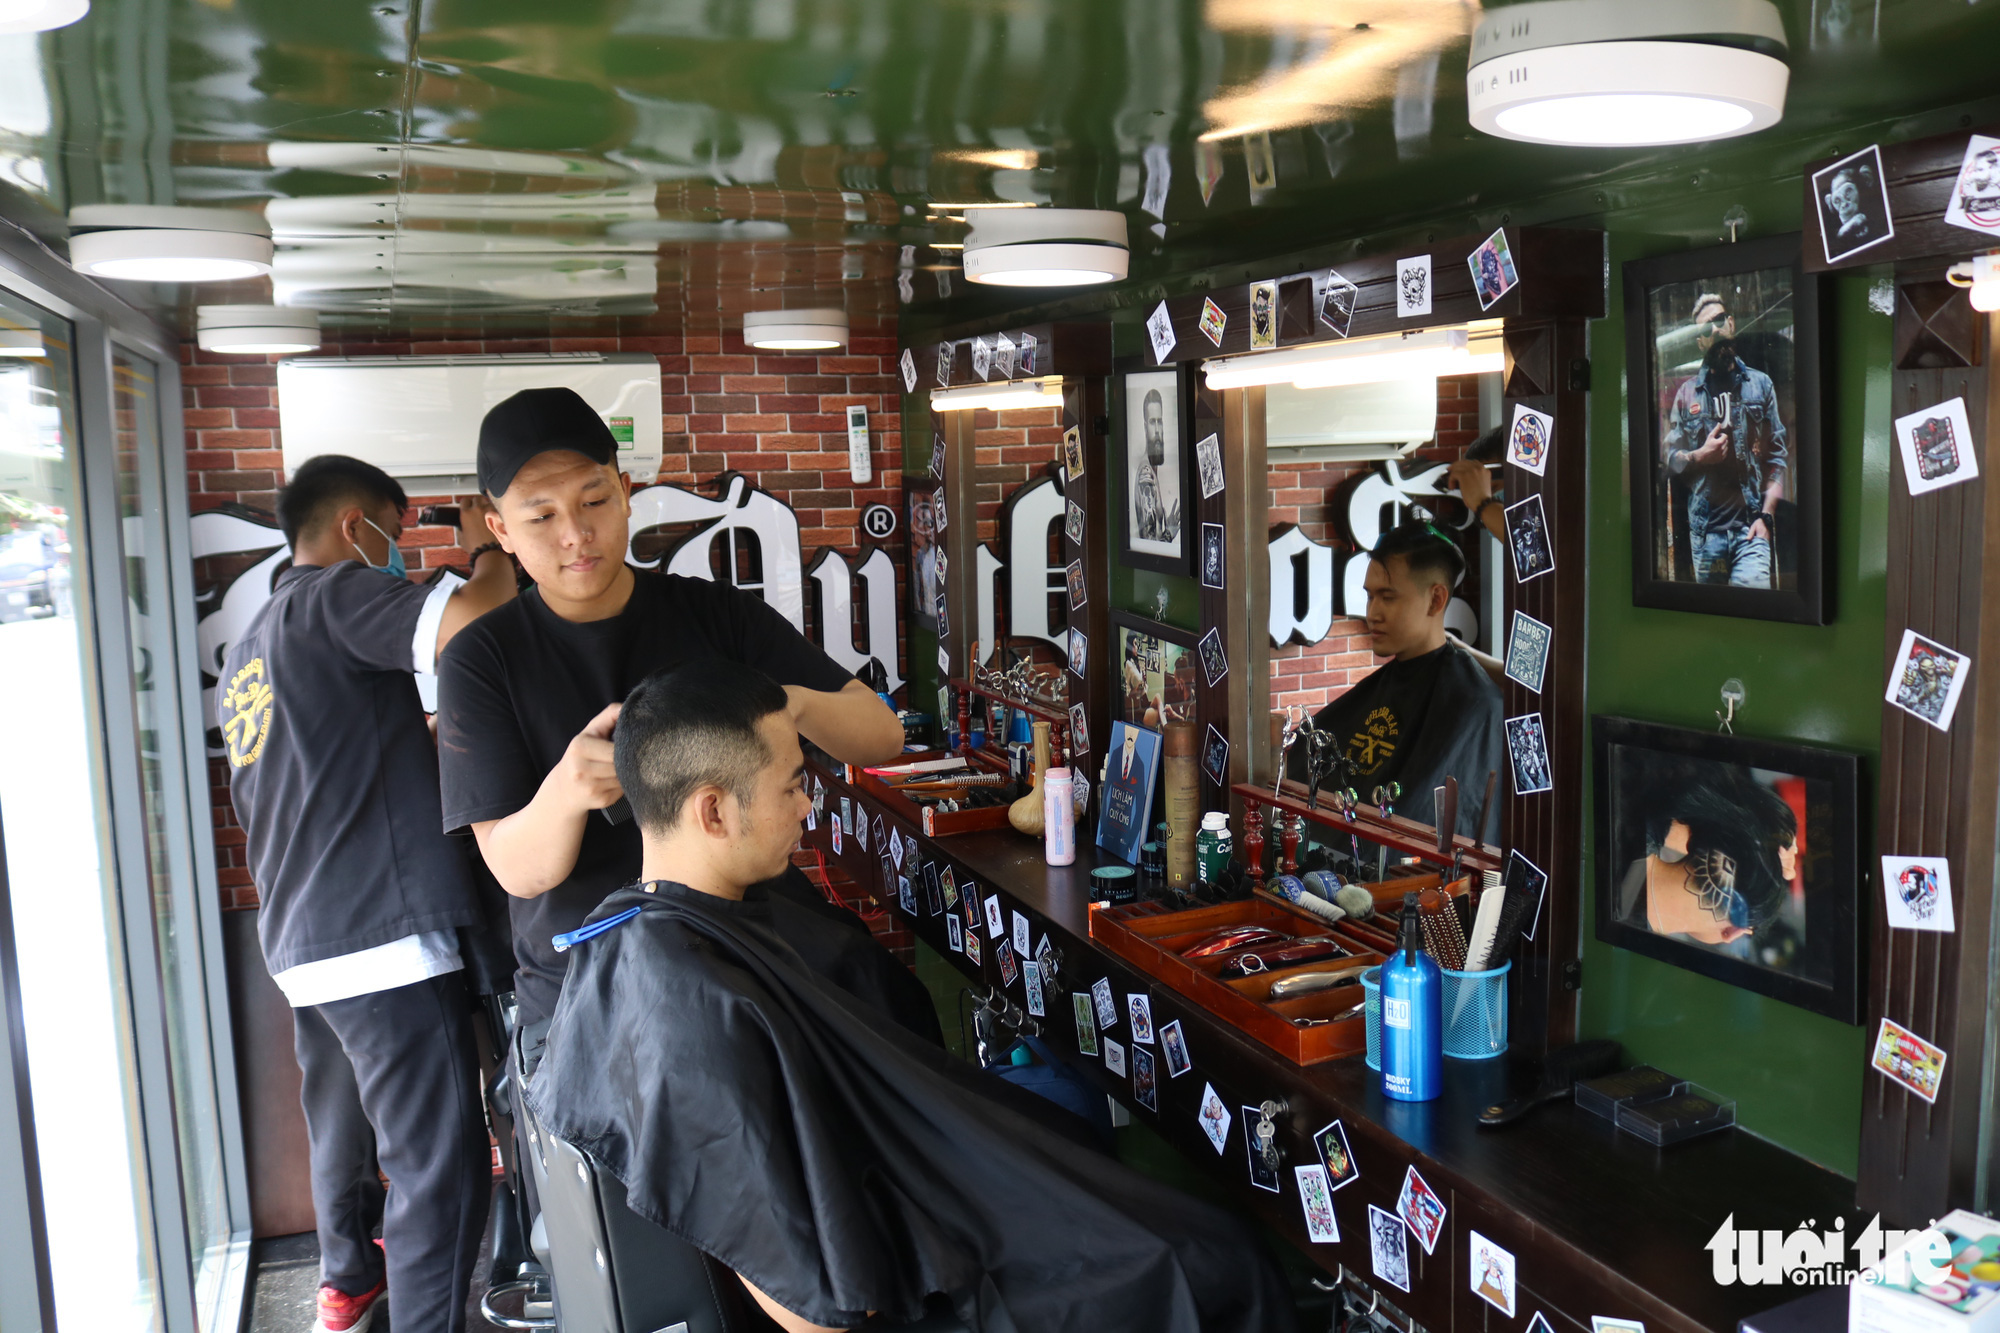 <em>Barbers give free haircuts to customers inside a mobile barbershop in Ho Chi Minh City, Vietnam. Photo: </em>Ngoc Phuong / Tuoi Tre